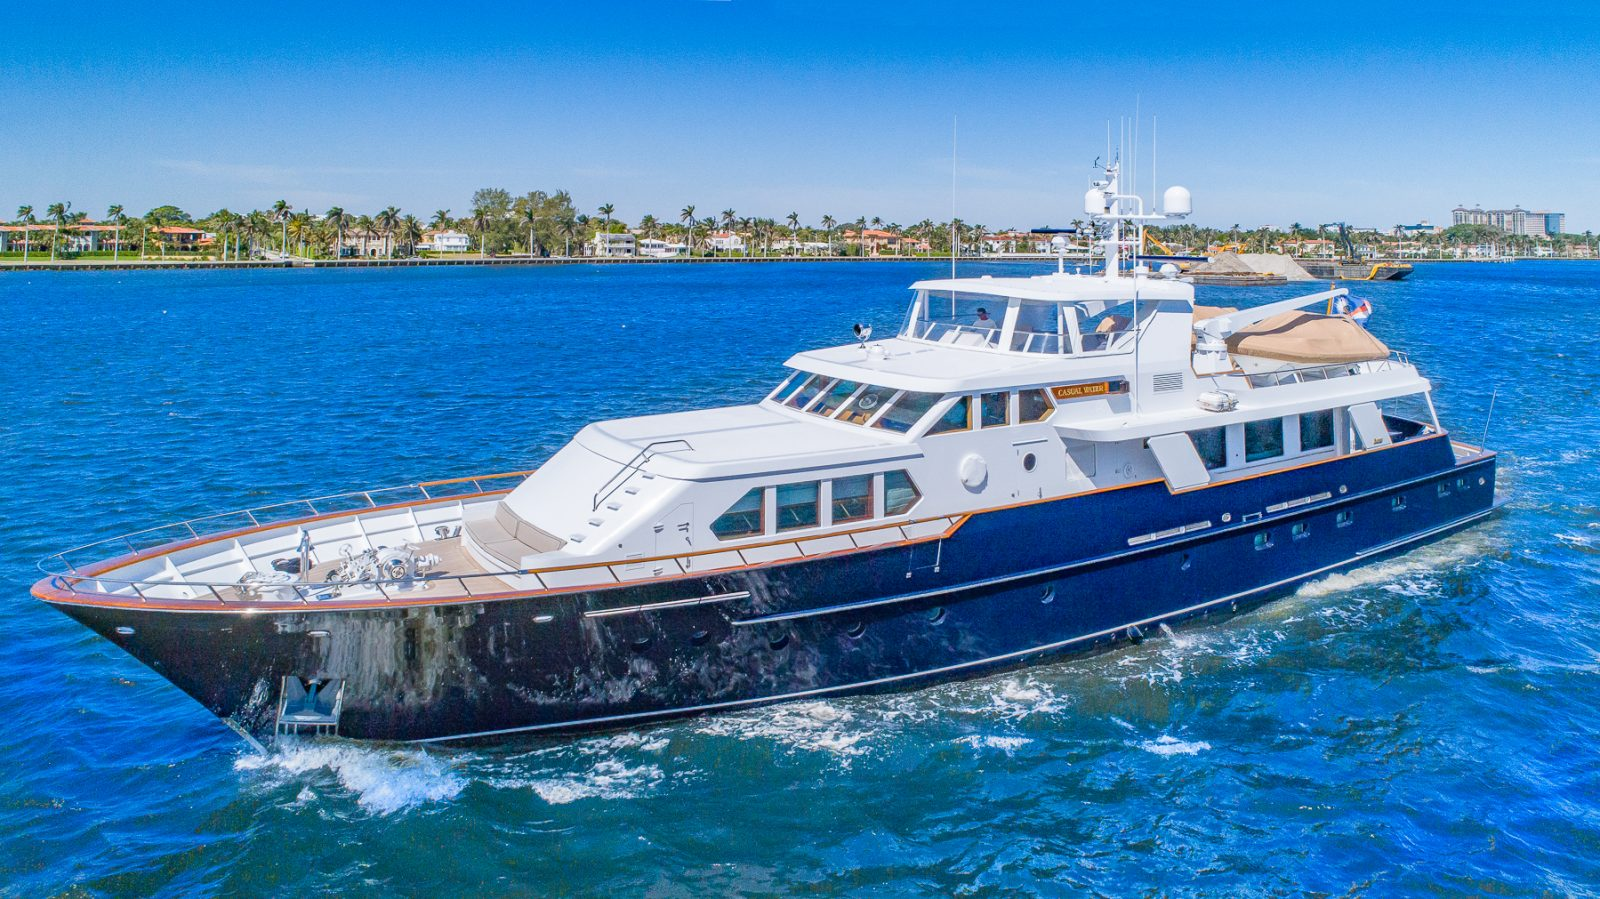 CASUAL WATER Yacht for Sale - IYC